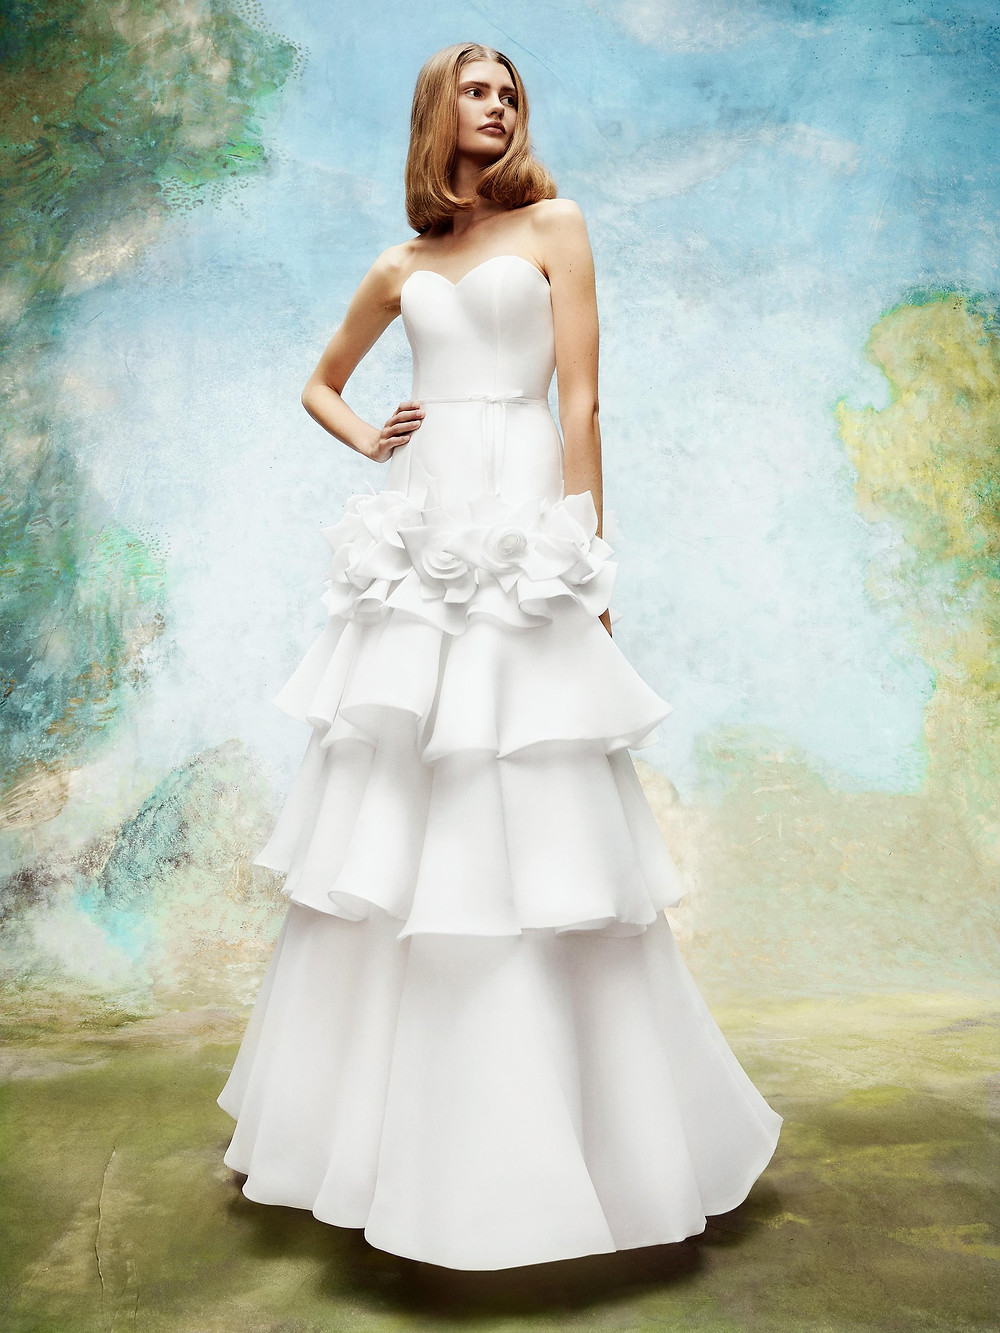 A Viktor & Rolf strapless A-line wedding dress with a layered ruffle skirt and flowers